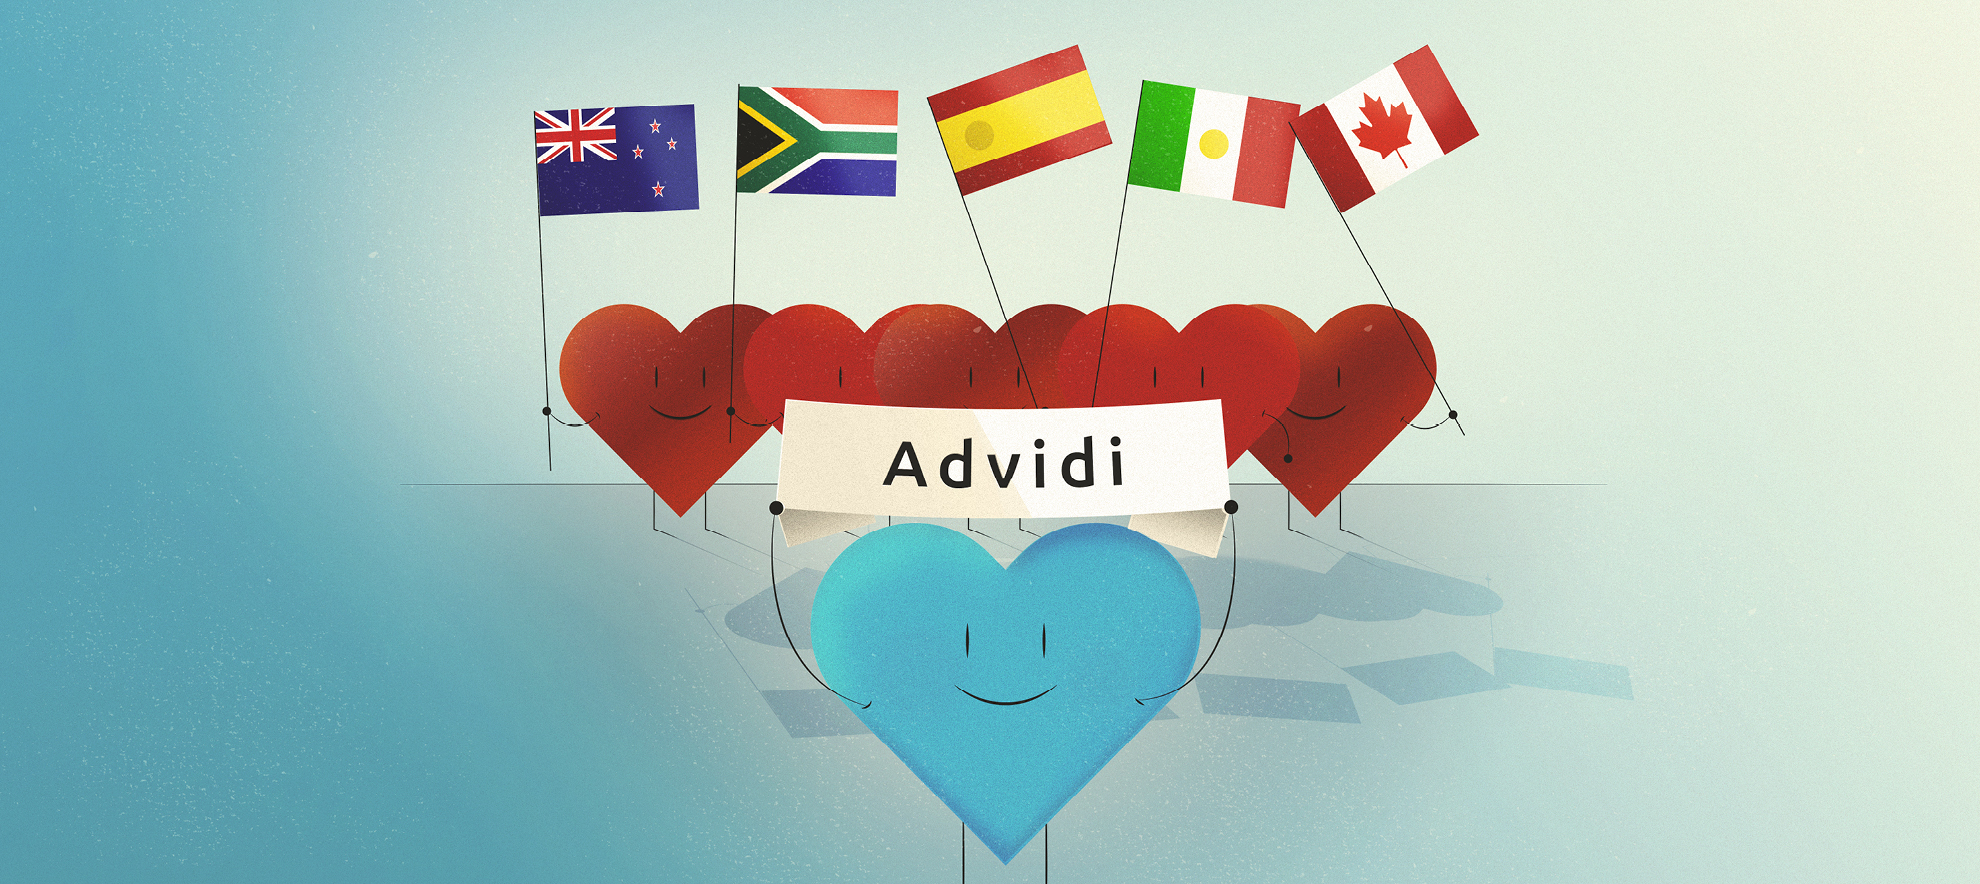 Advidi Expands Dating Portfolio with Exclusive Offers in New GEOs